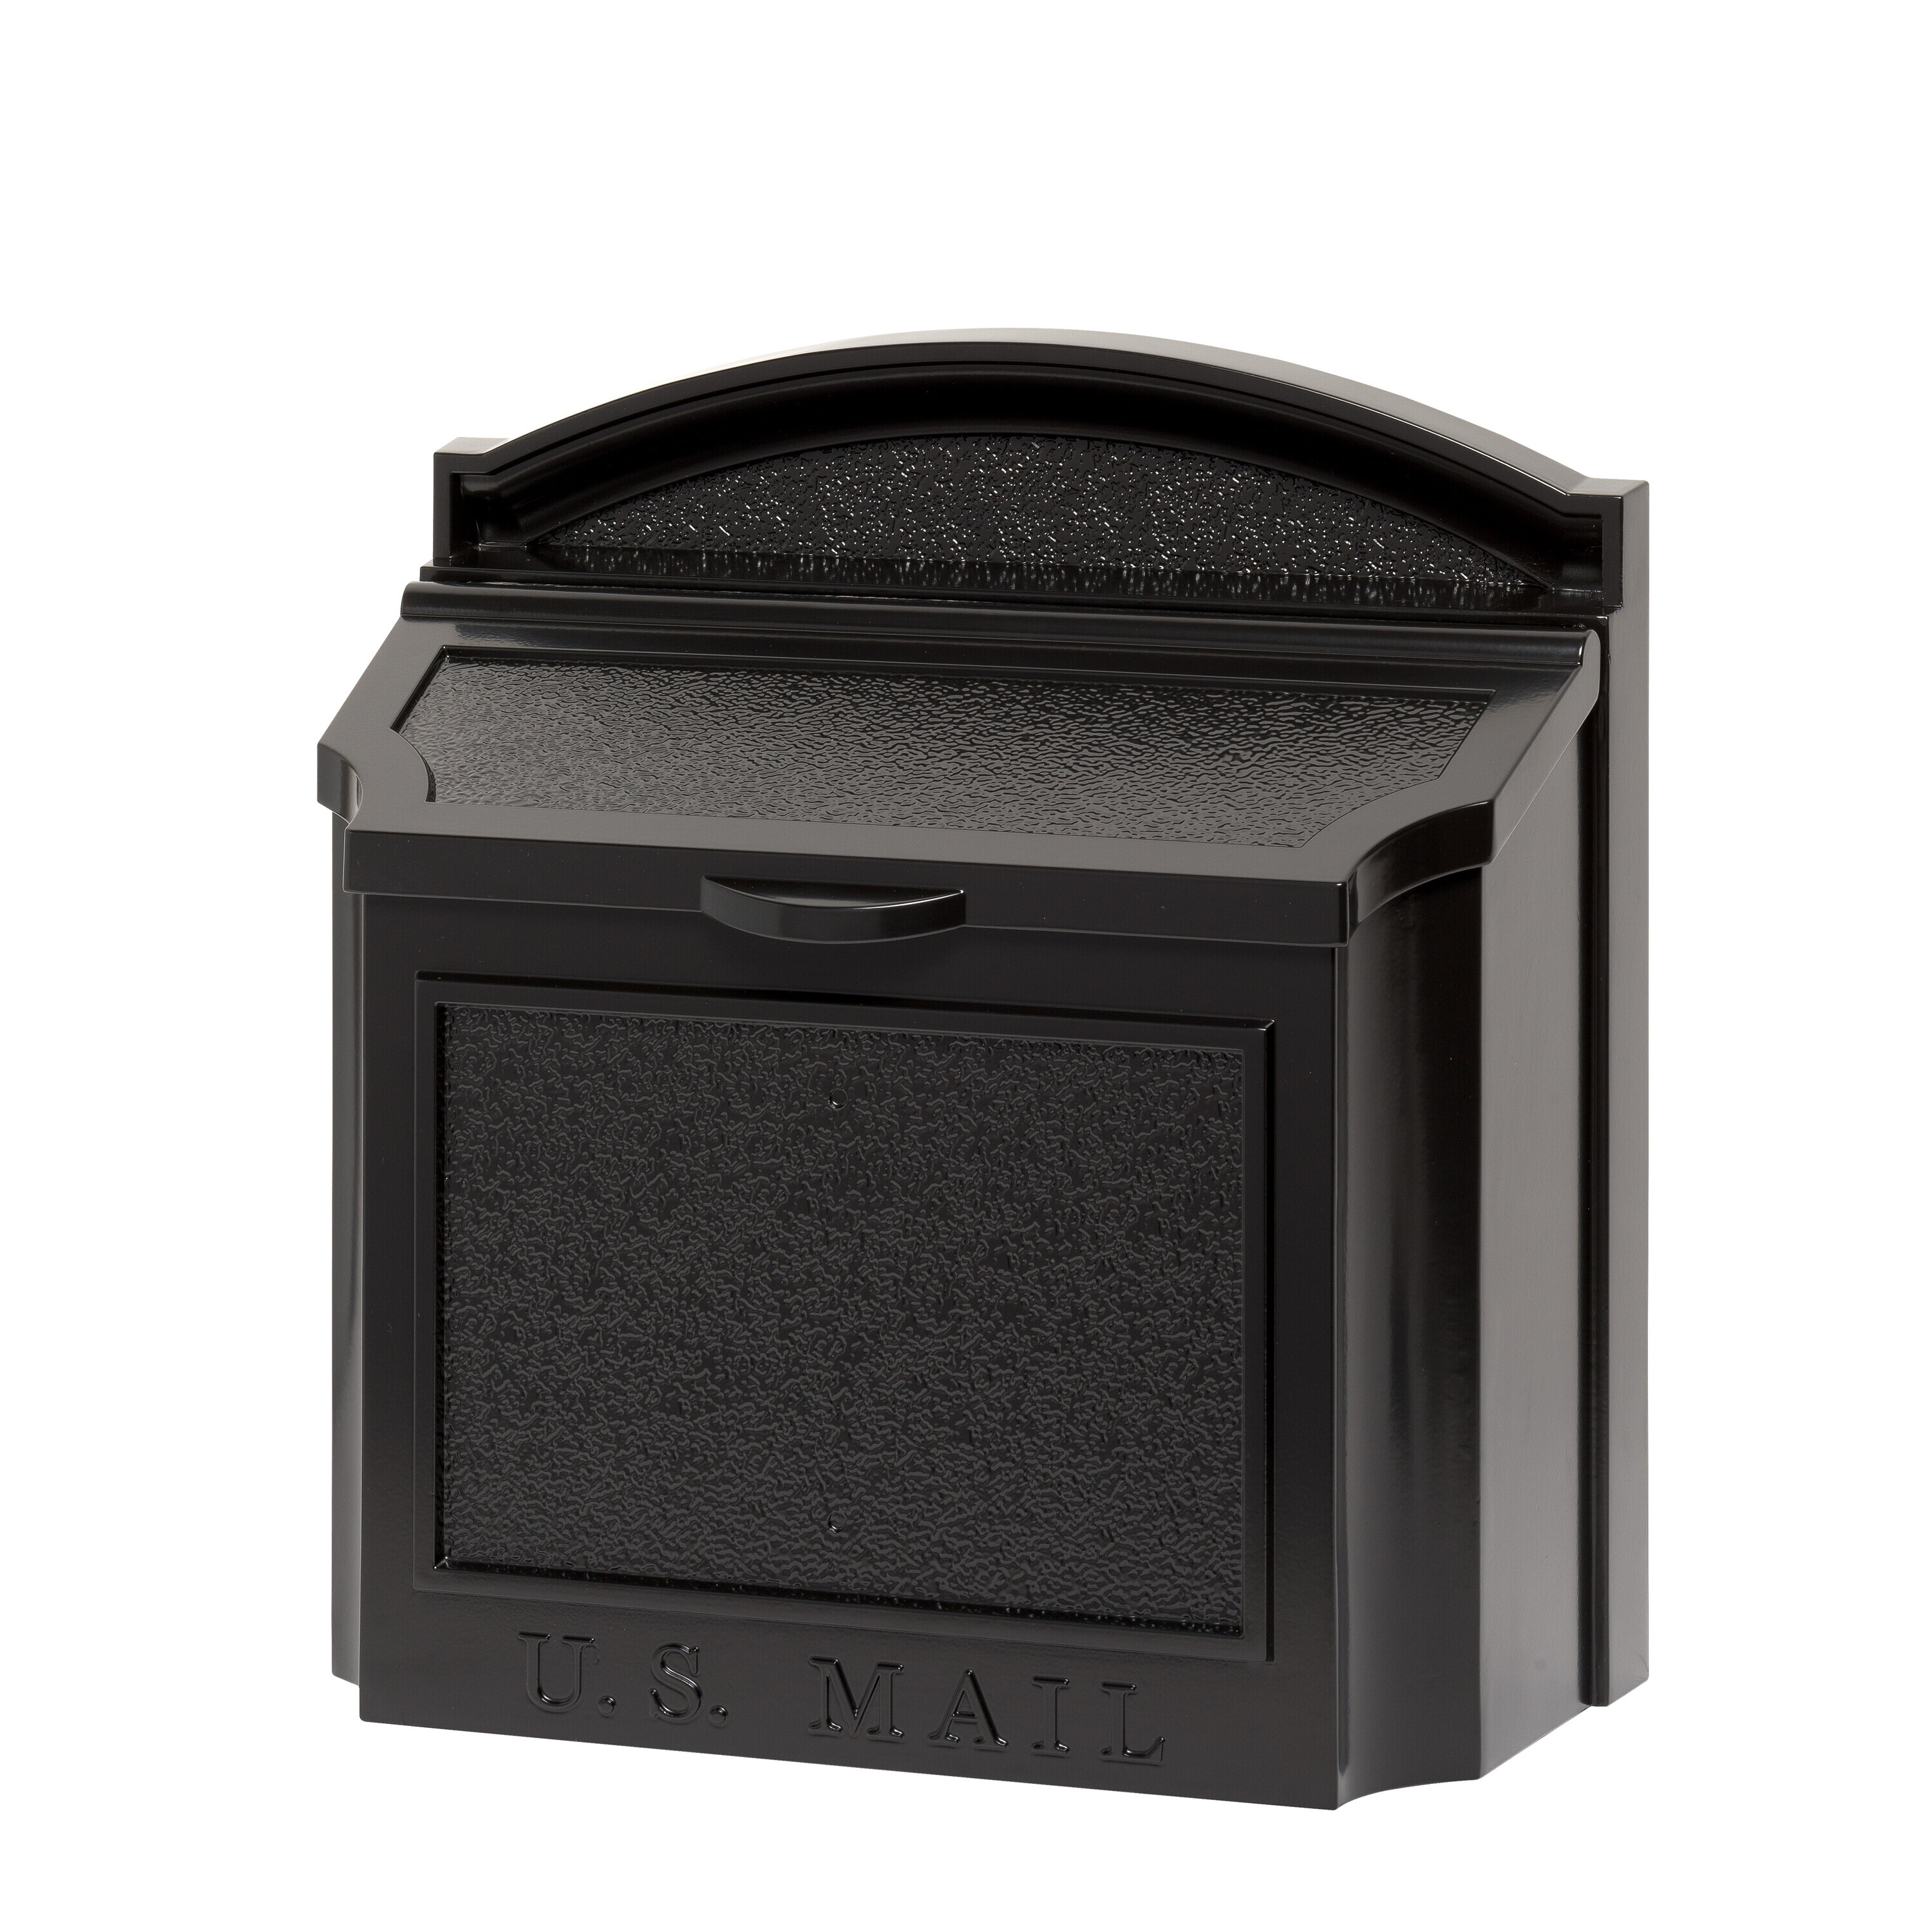 Whitehall Products The Large Capacity Locking Wall Mounted Mailbox Reviews Wayfair